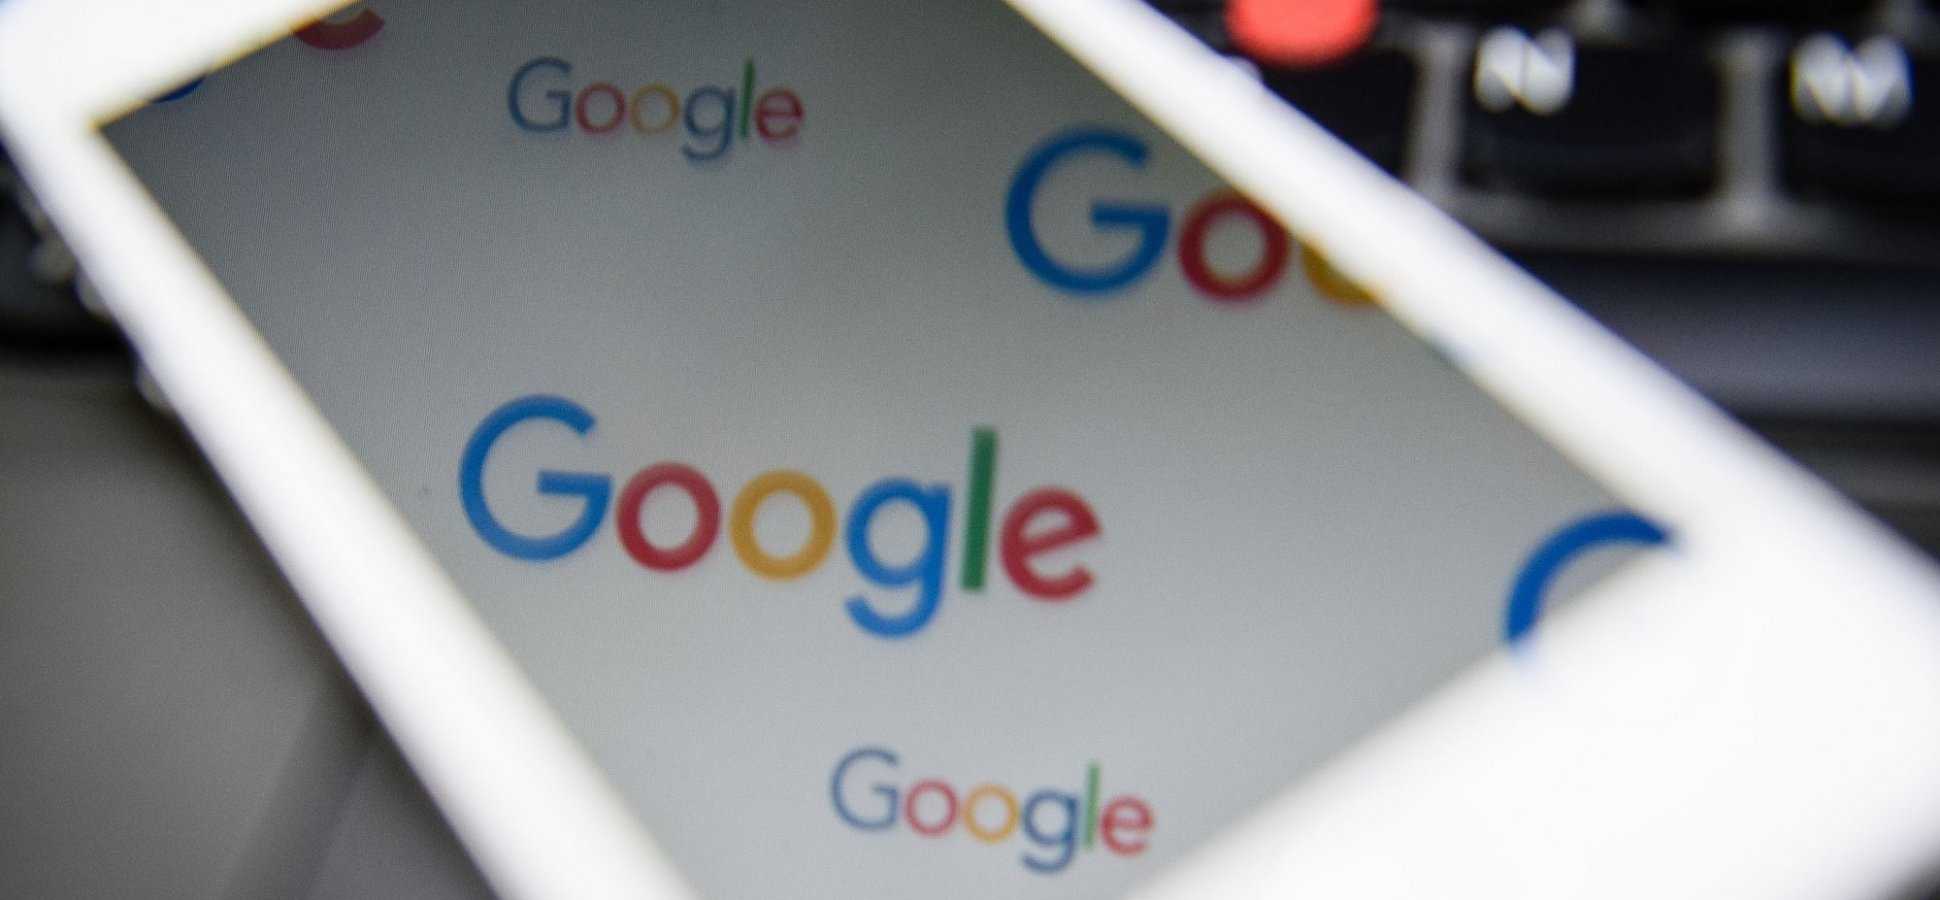 How to Efficiently Use Google to Find a Hotel When Traveling for Business